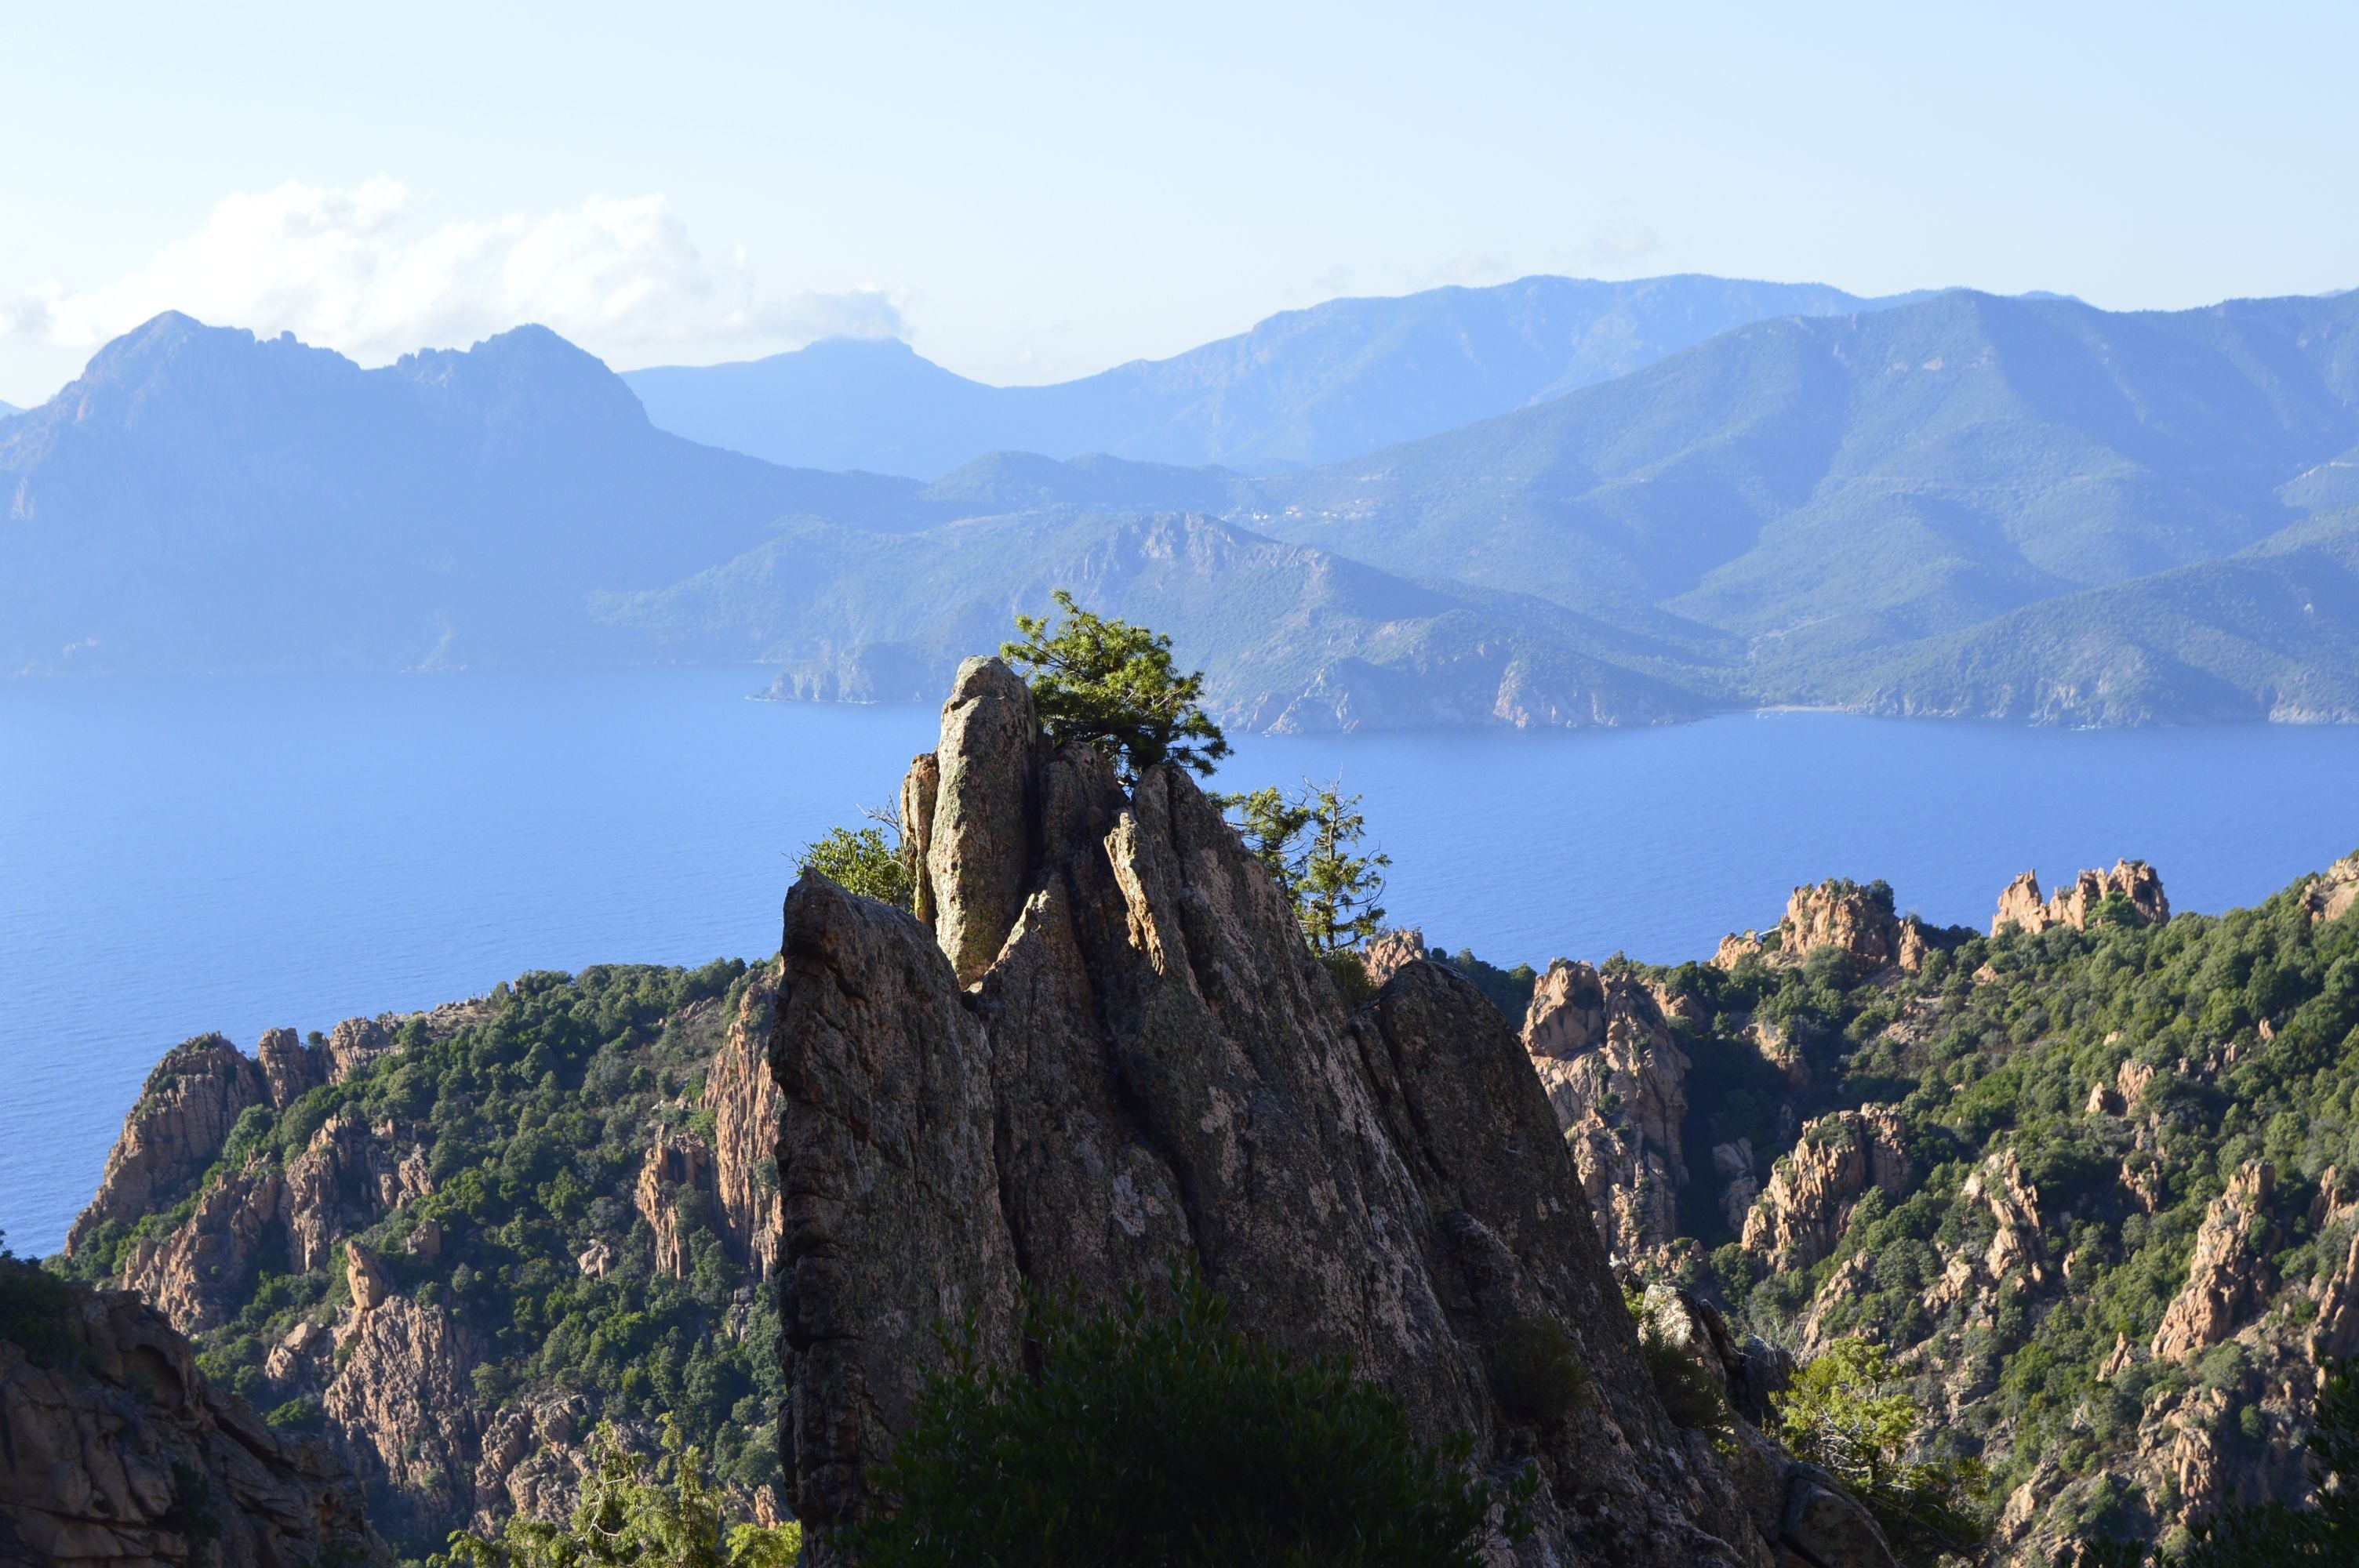 Wilderness in Mirador de Calanches de Piana